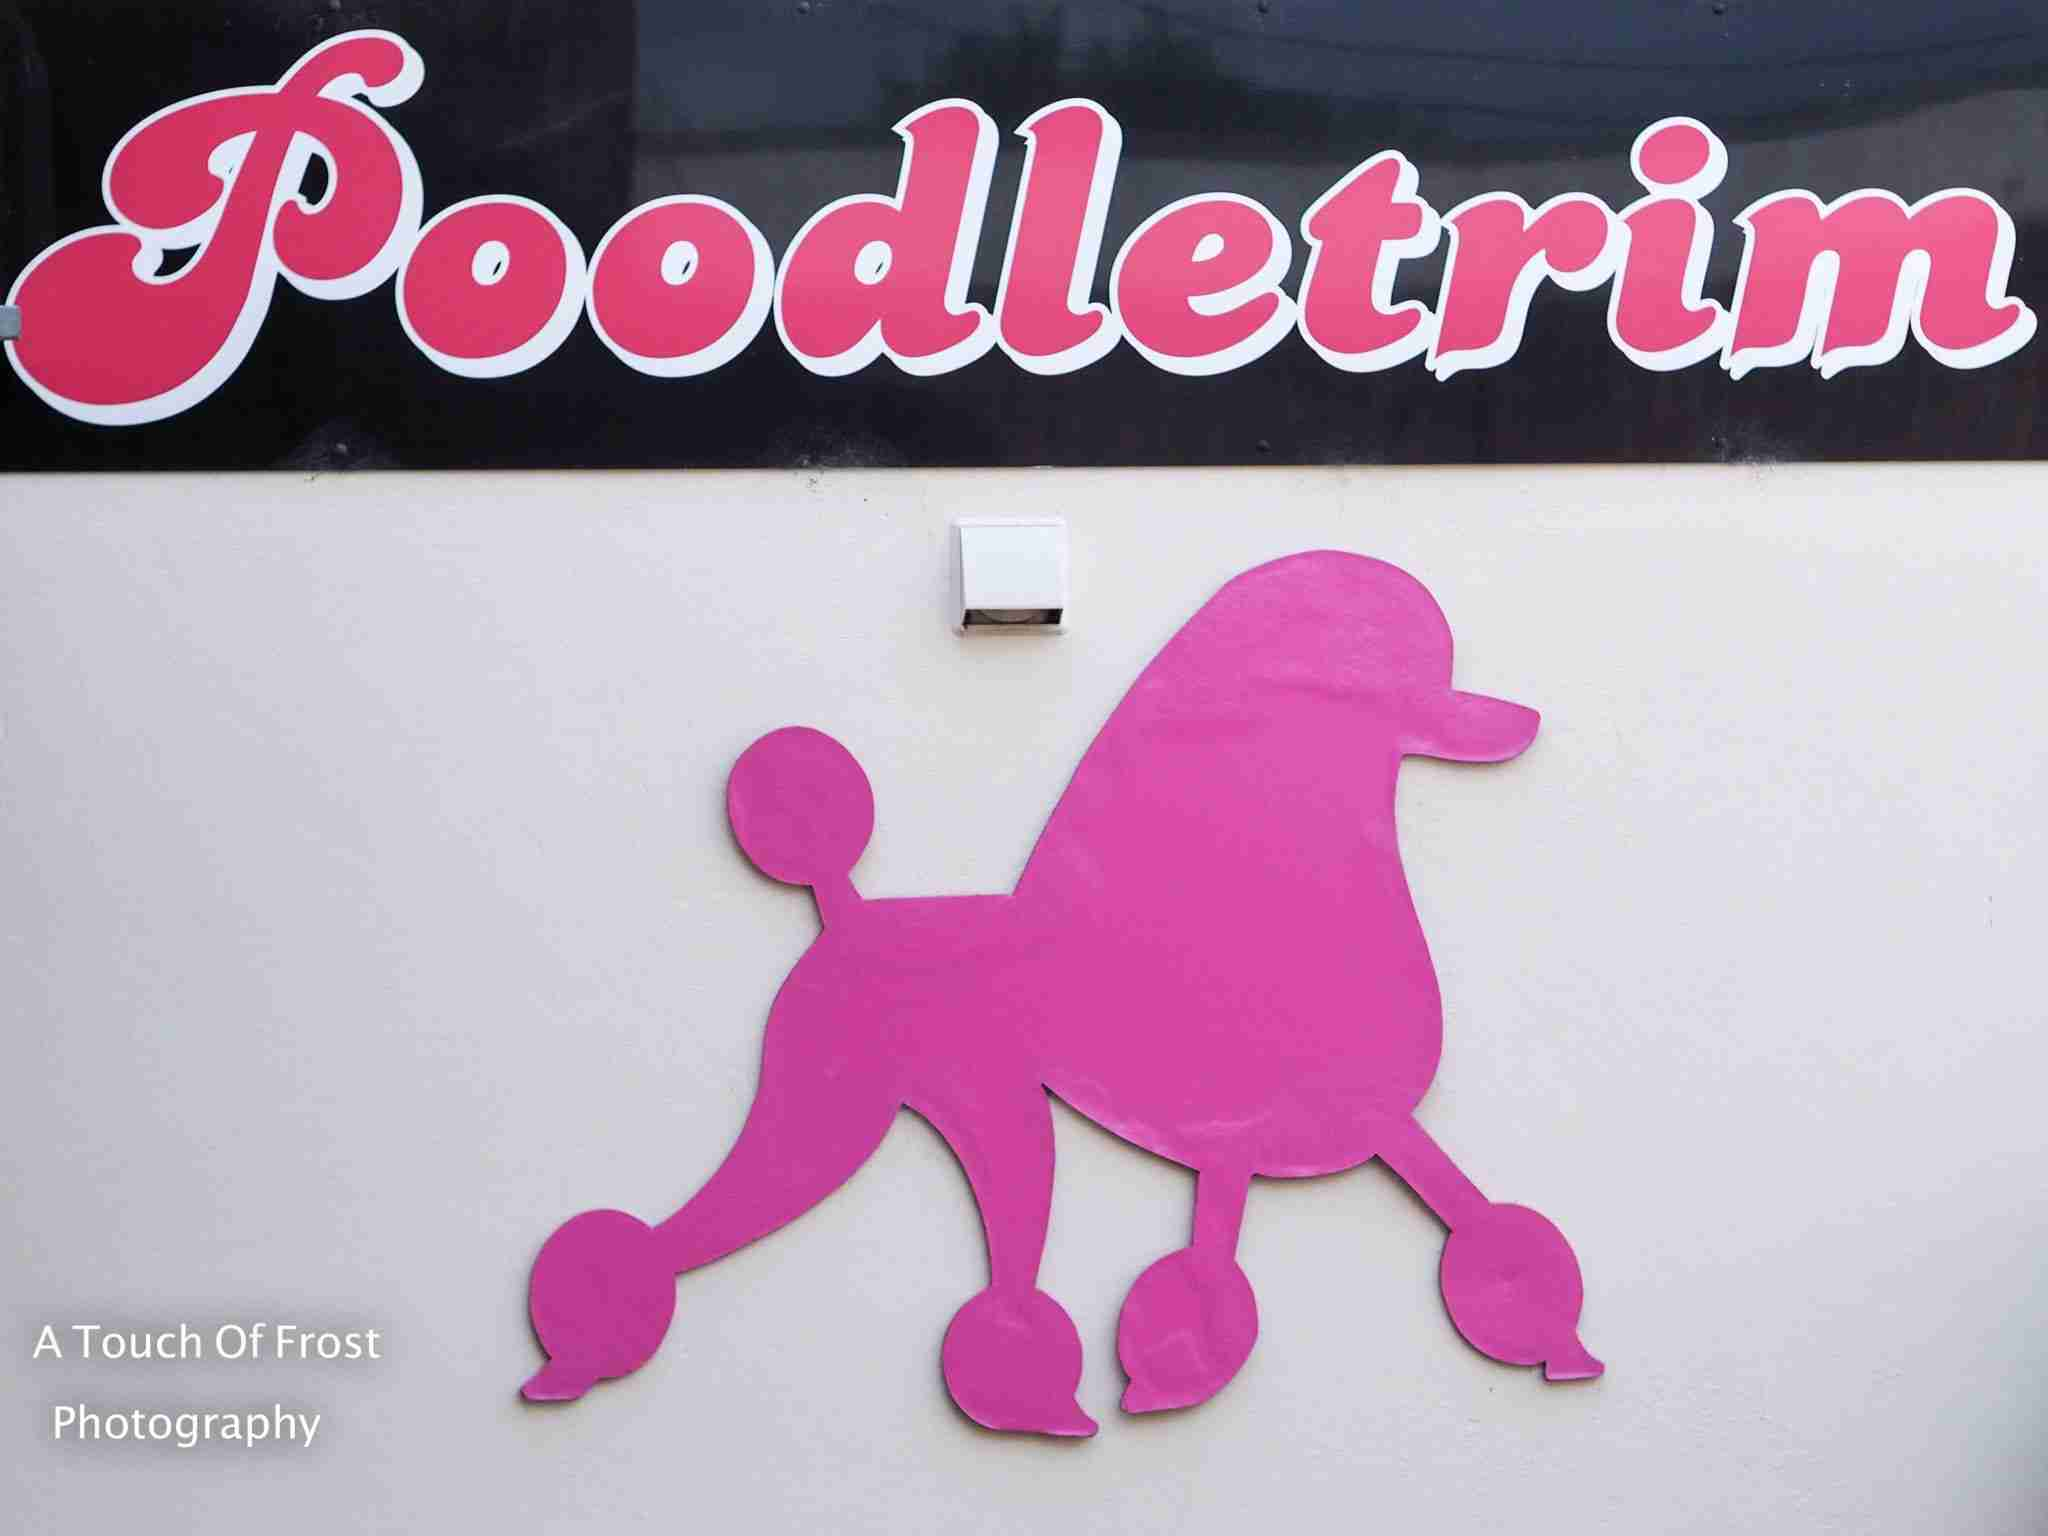 Poodledoodle: Interview with Poodletrim